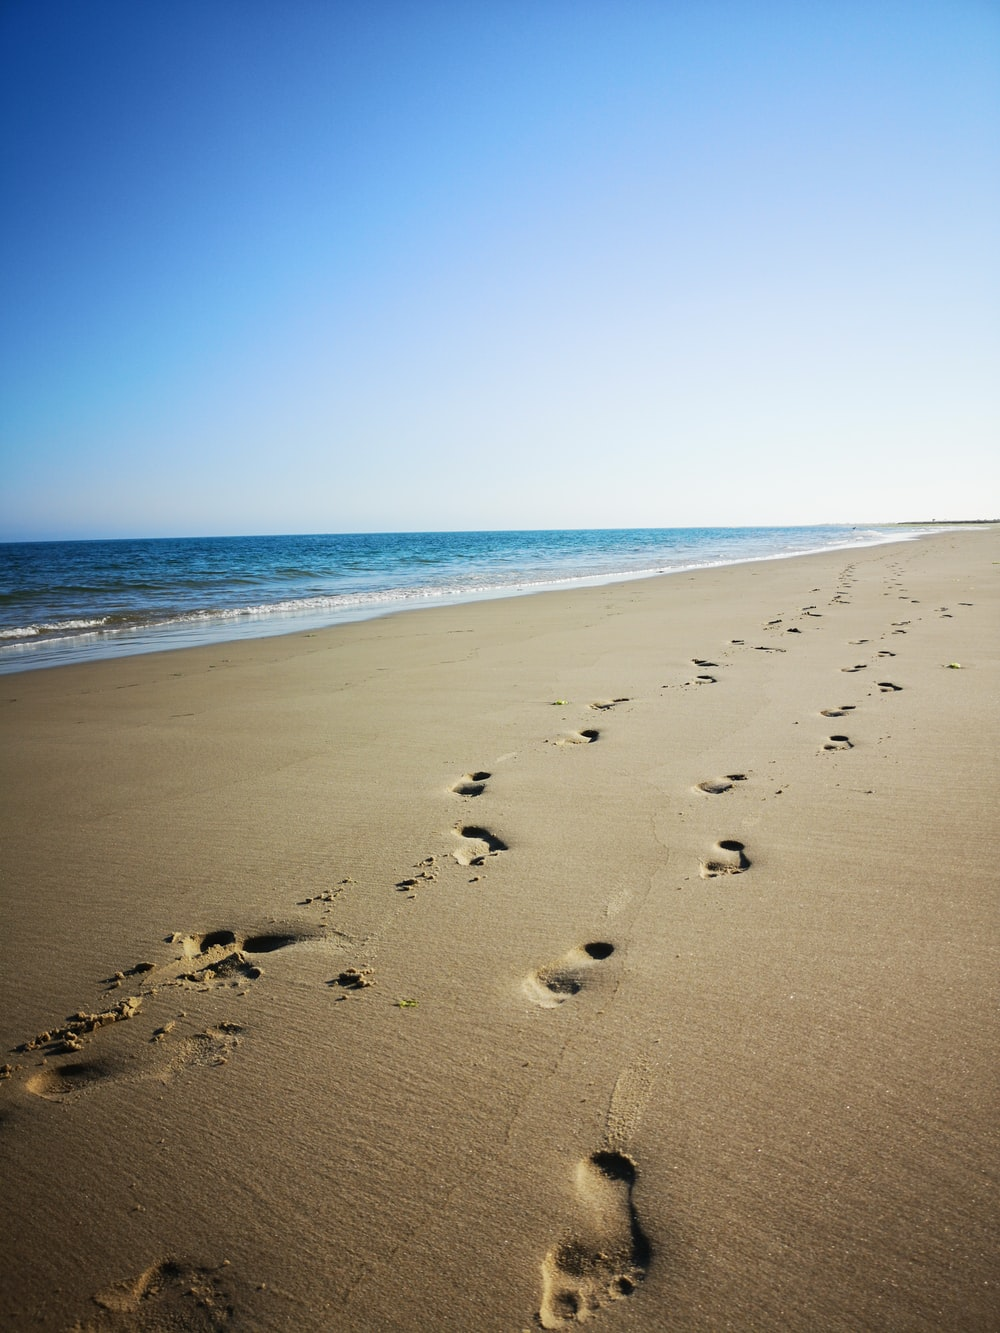 footprints in asnd